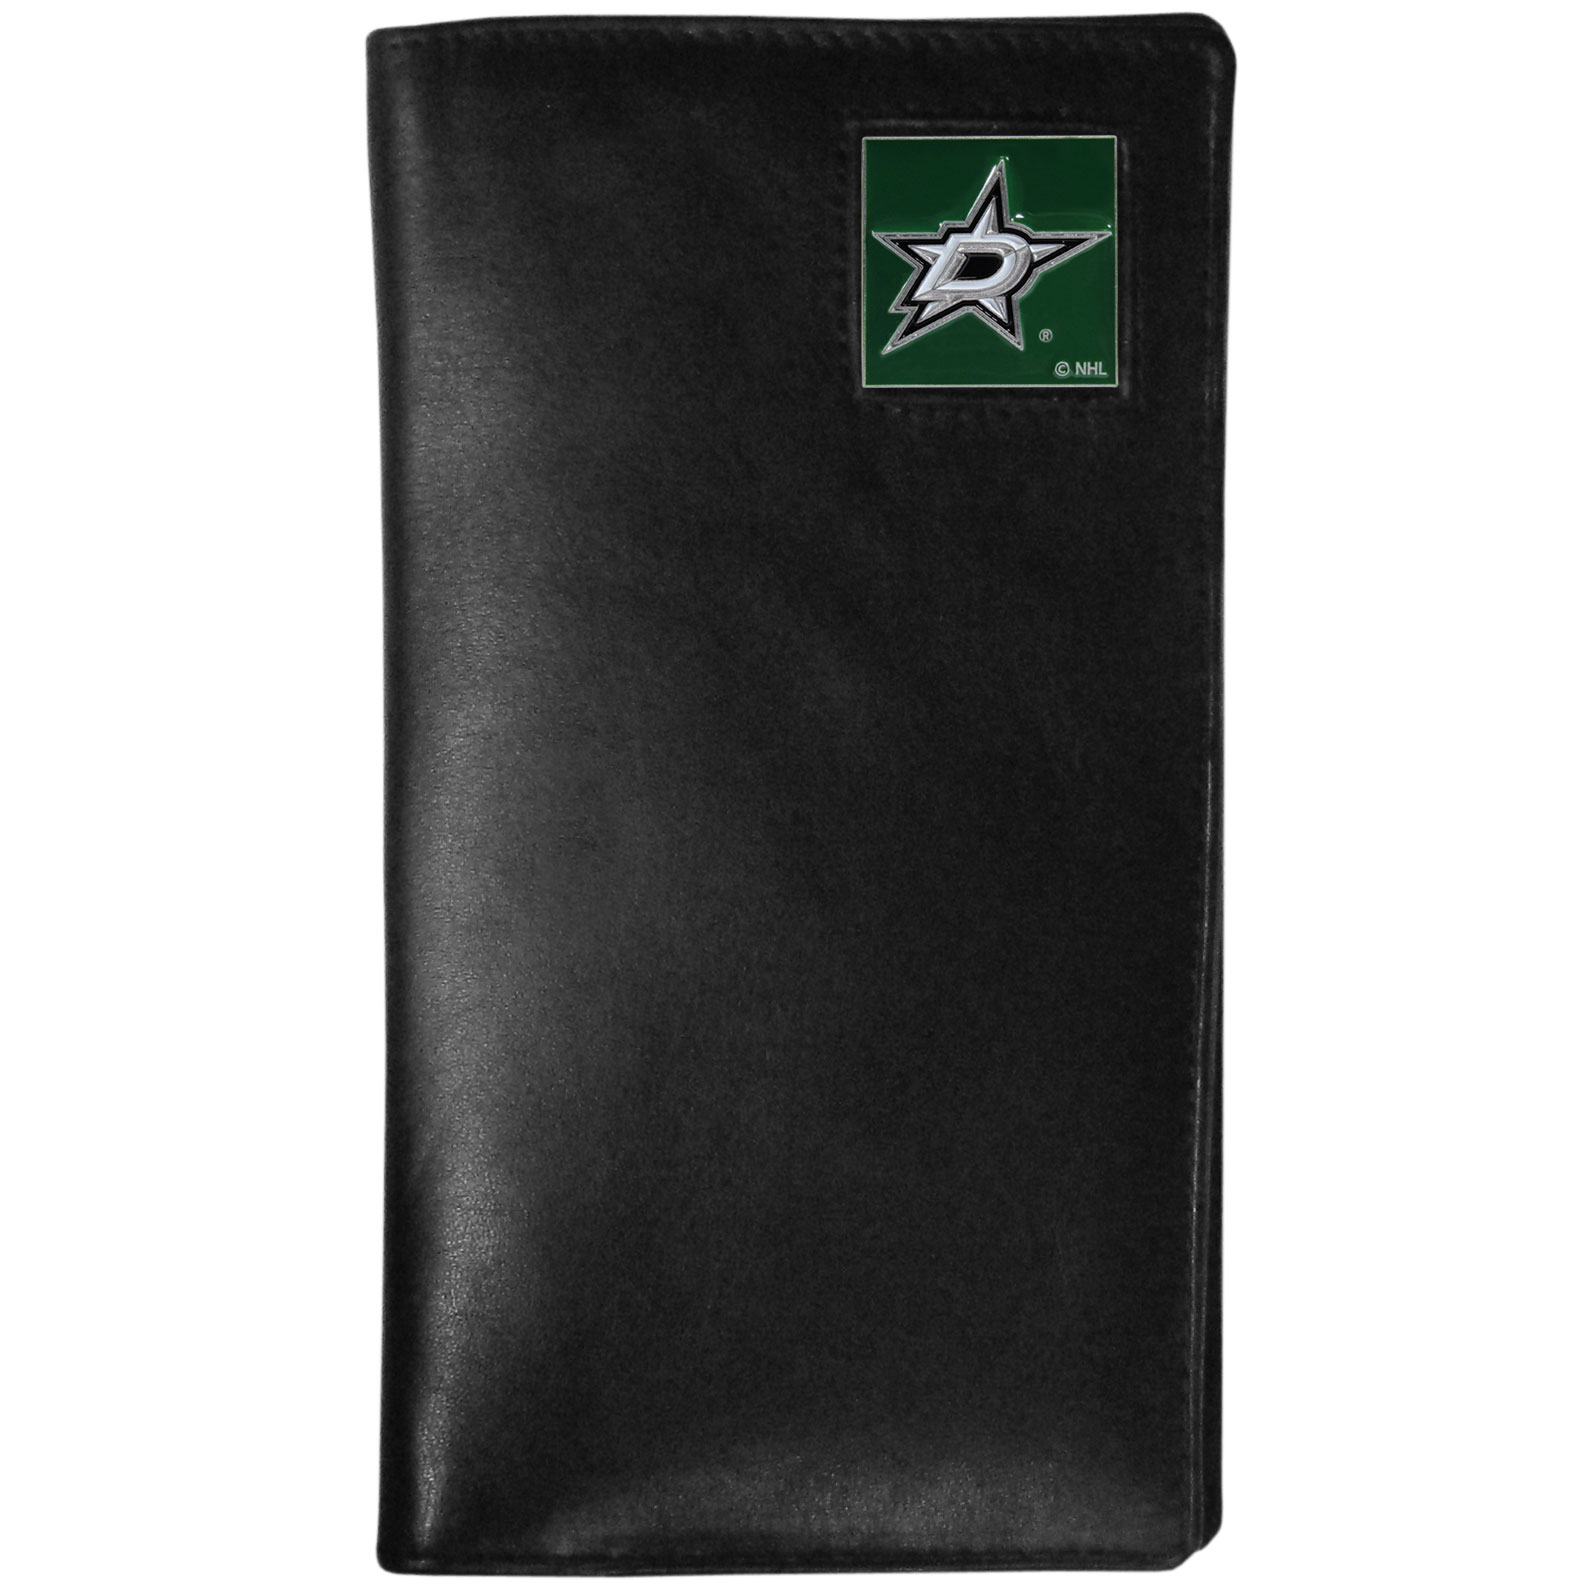 Dallas Stars Tall Leather Wallet - This officially licensed Dallas Stars tall leather wallet cover is made of high quality leather with a fully cast metal Dallas Stars emblem with enameled Dallas Stars color detail. The cover fits both side and top loaded checks and includes a large zippered pocket, windowed ID slot, numerous credit card slots and billfold pocket.